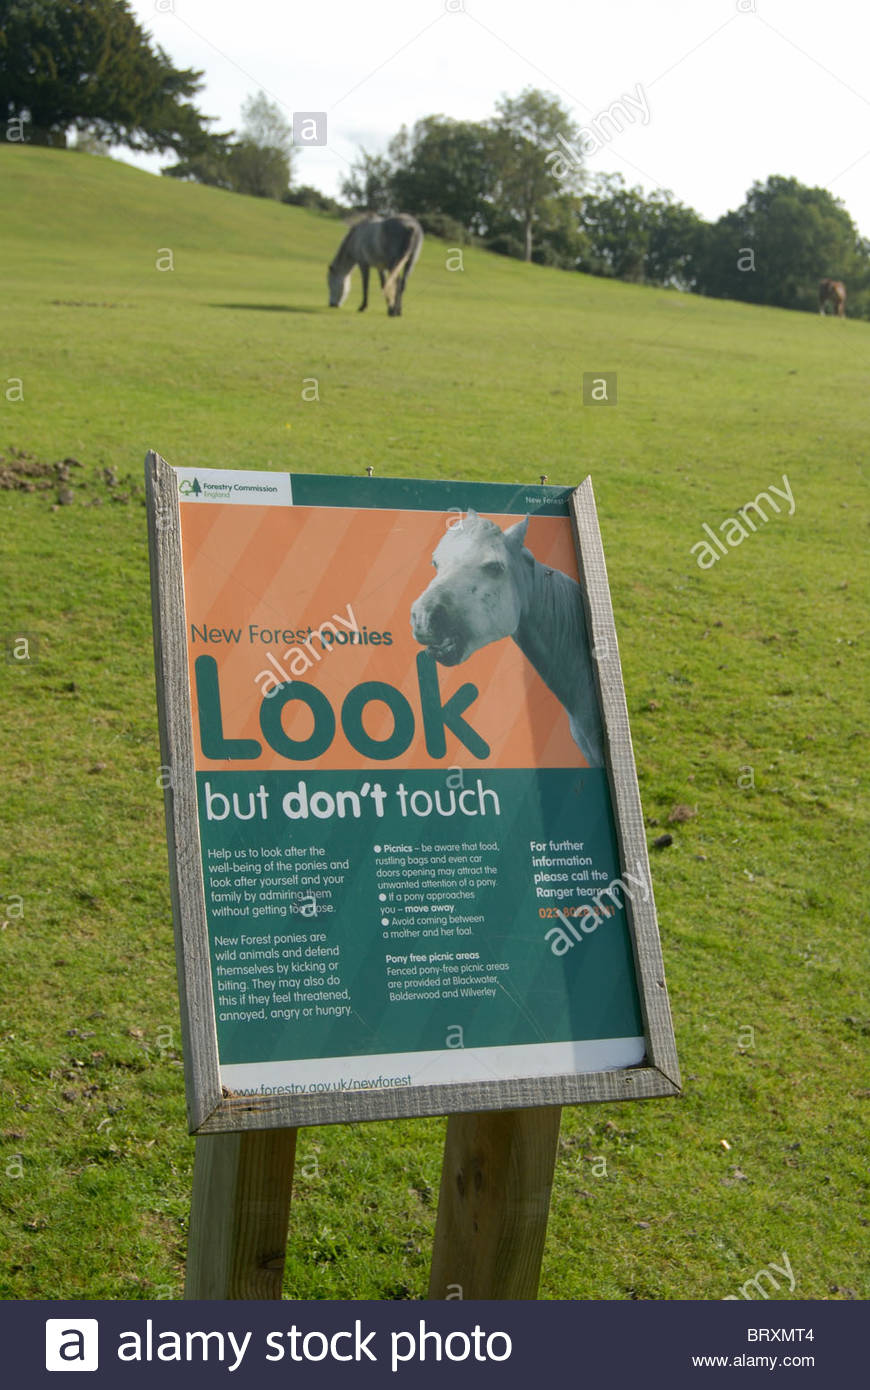 Lyndhurst UK - Instruction for tourists how they should treat New Forest Ponies. - Stock Image